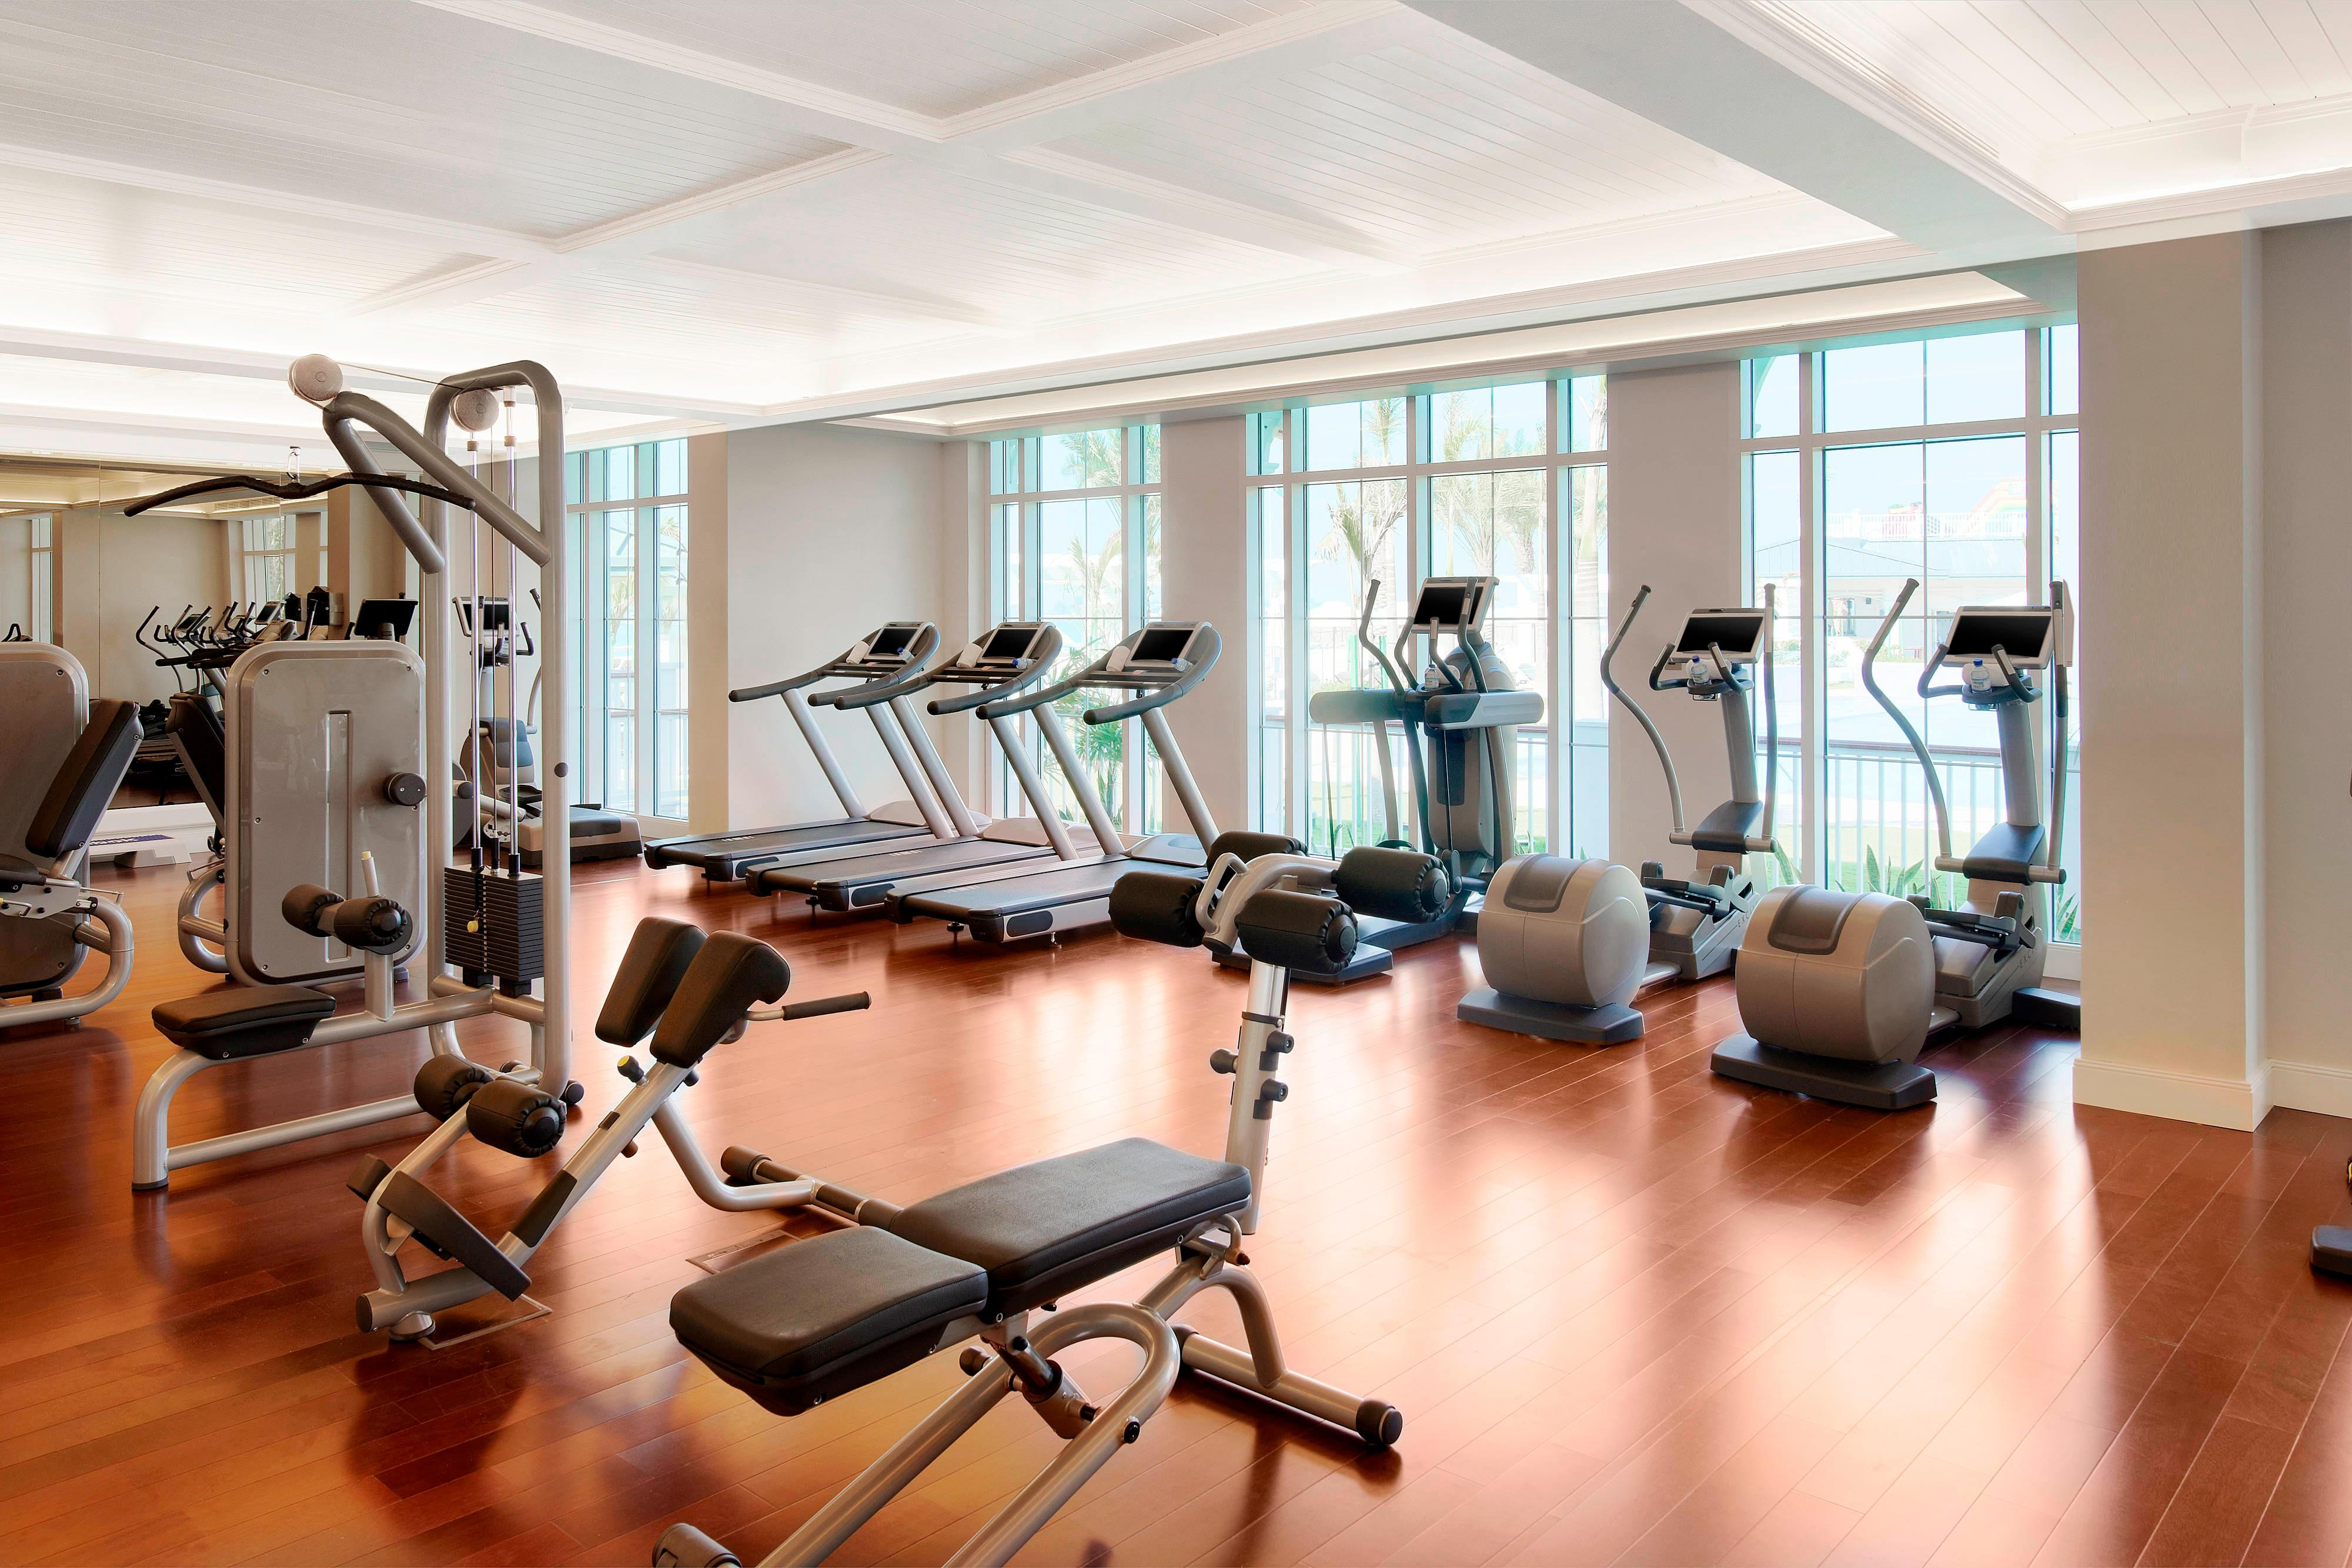 Nation Riviera Beach Club - Exercise Room